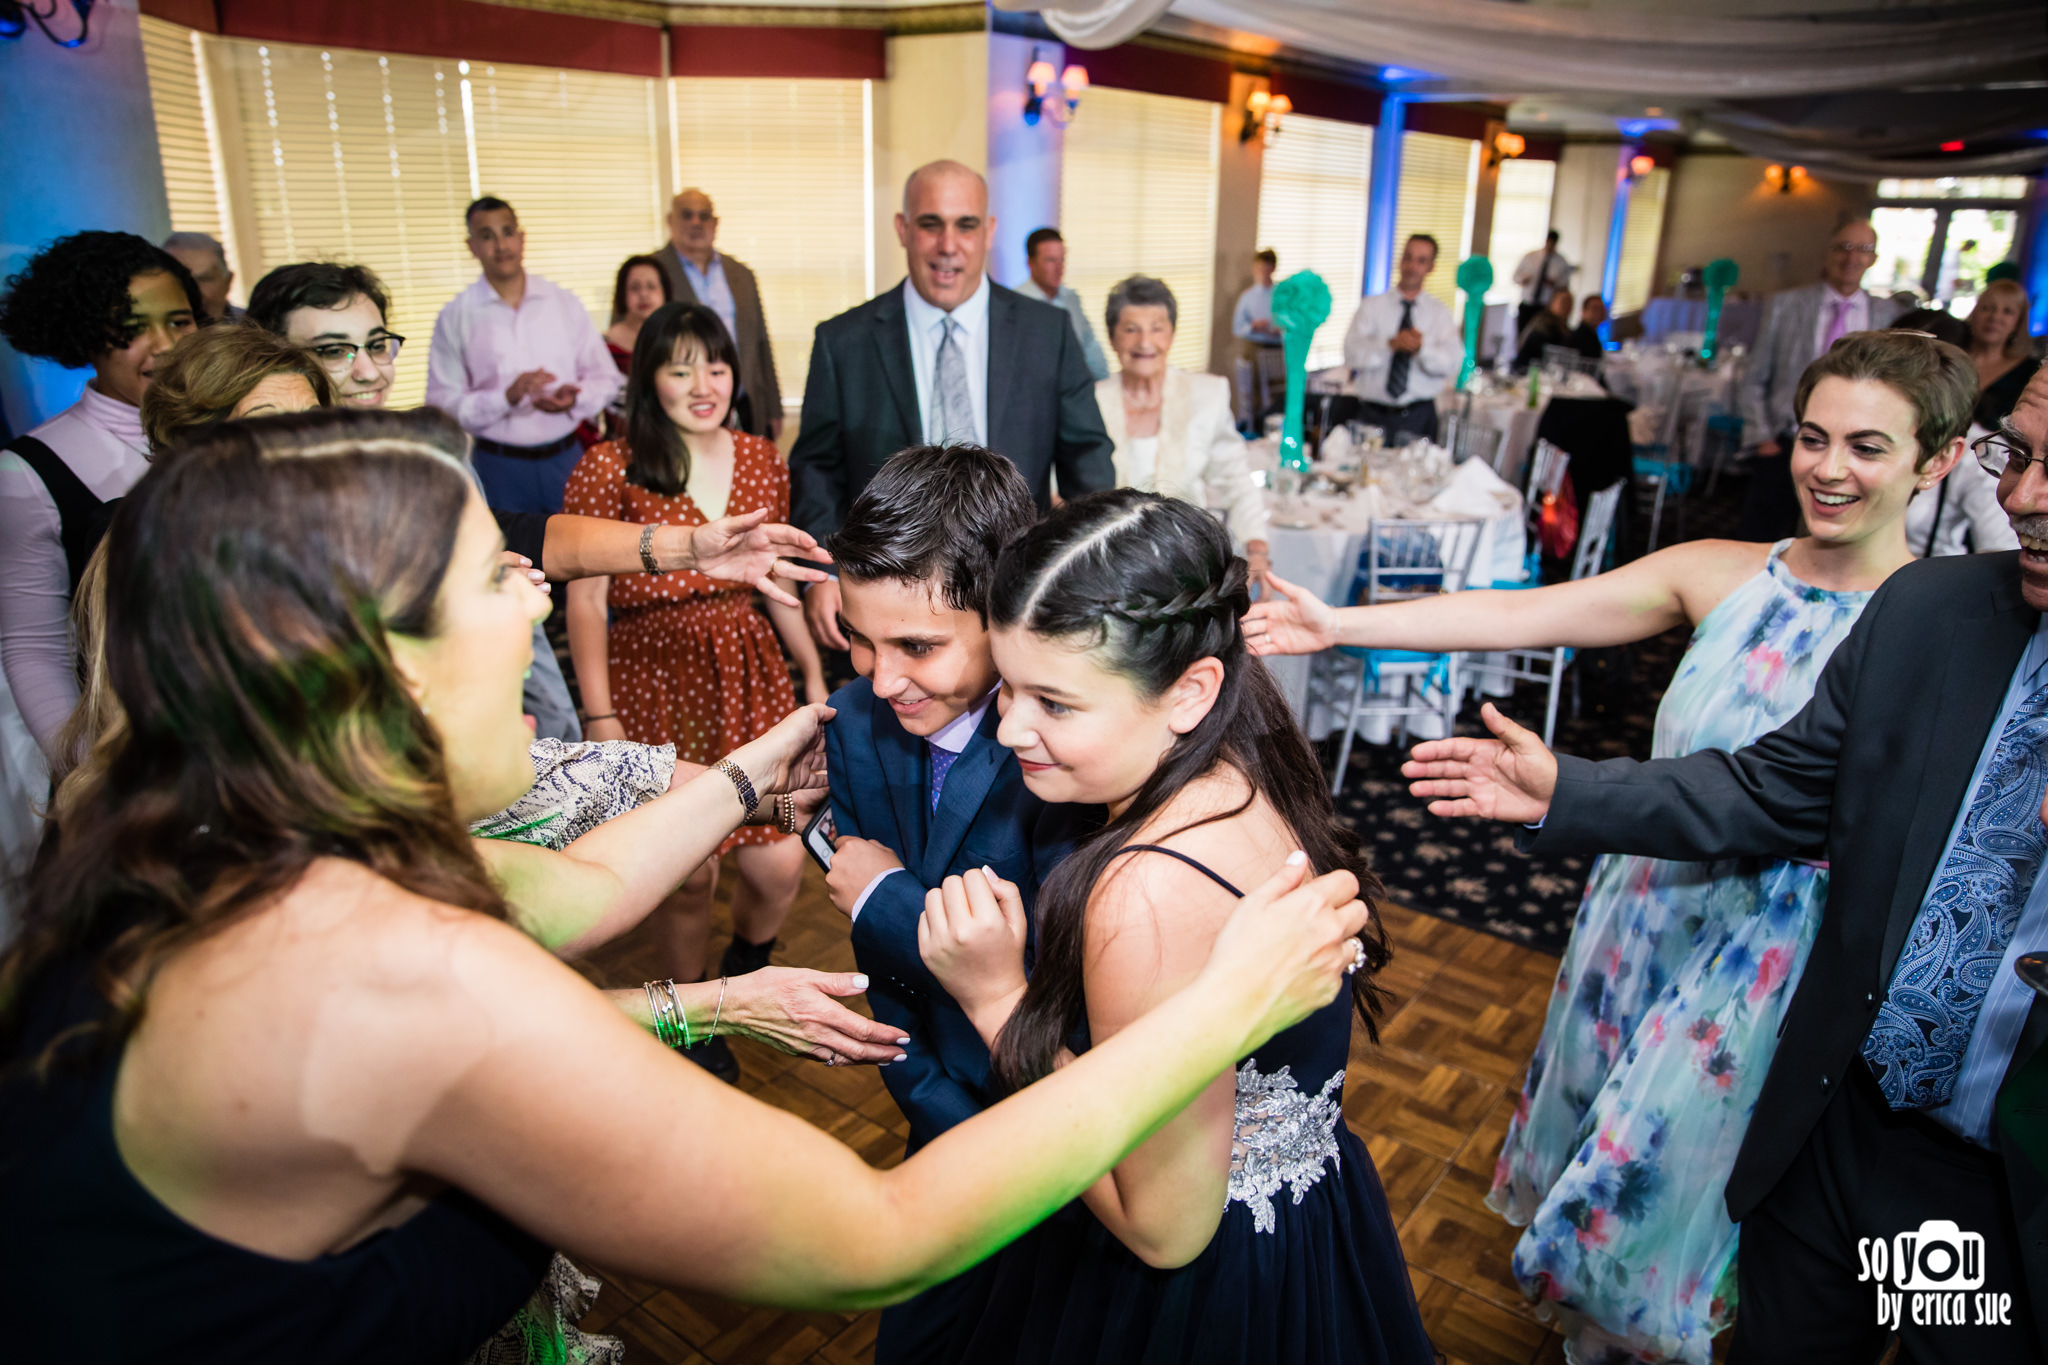 so-you-by-erica-sue-bnai-mitzvah-photographer-delray-beach-golf-club-fl-3368.jpg